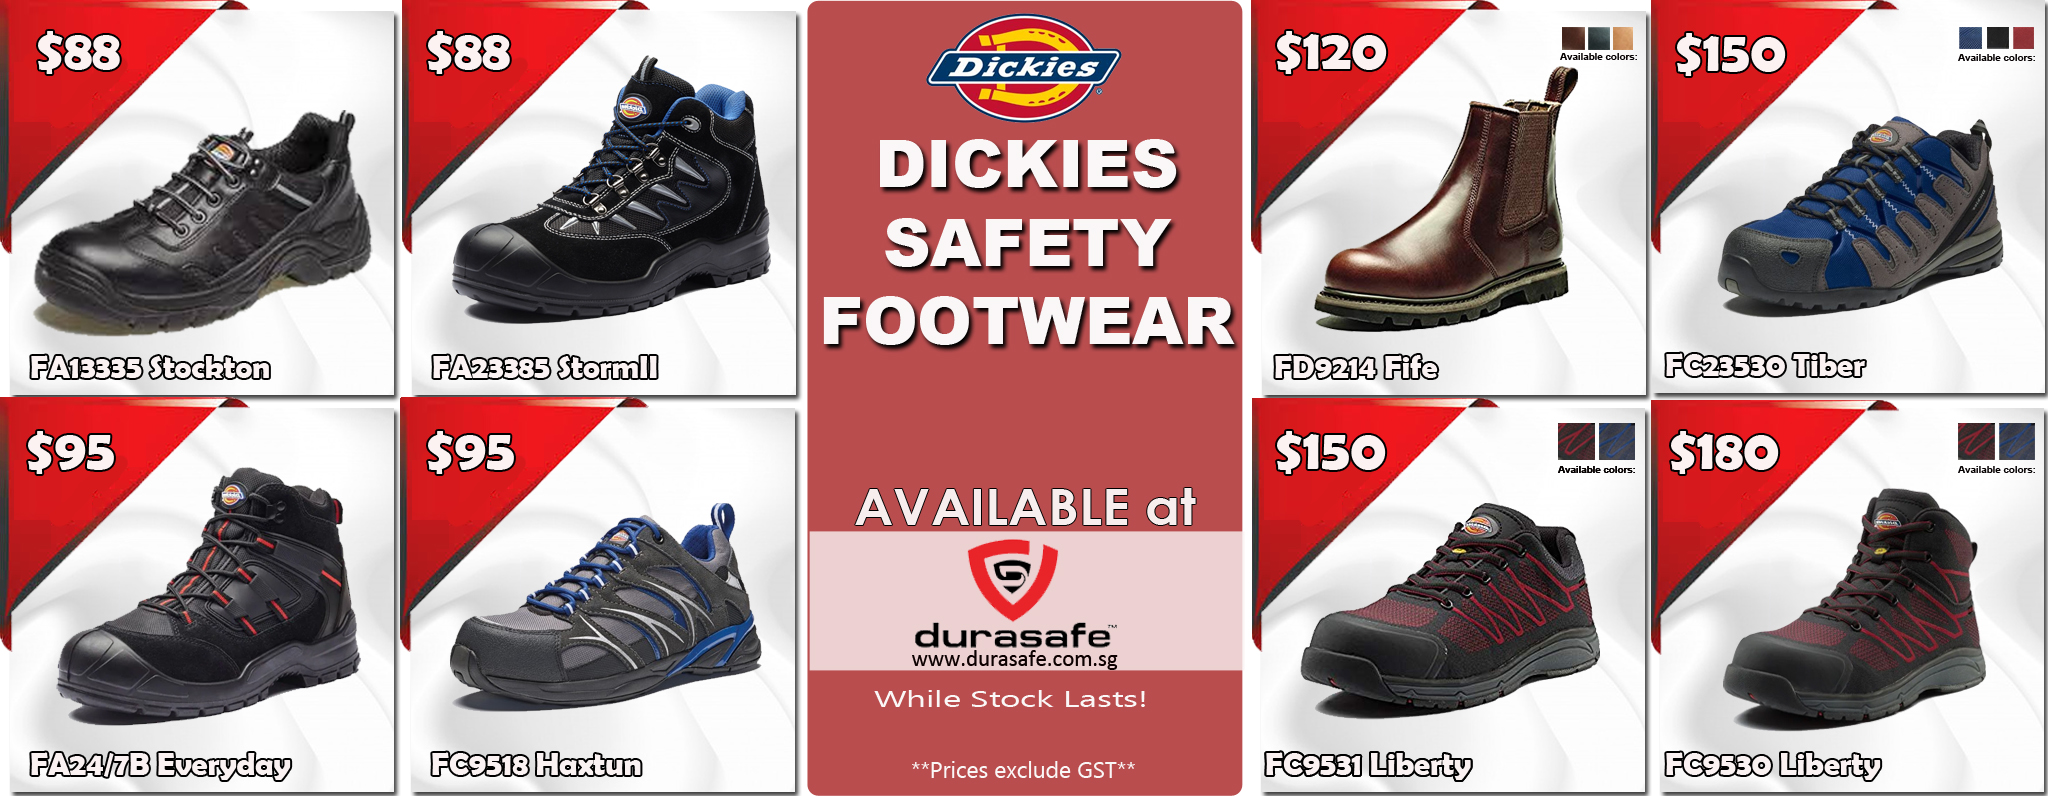 Dickies Footwear Banner